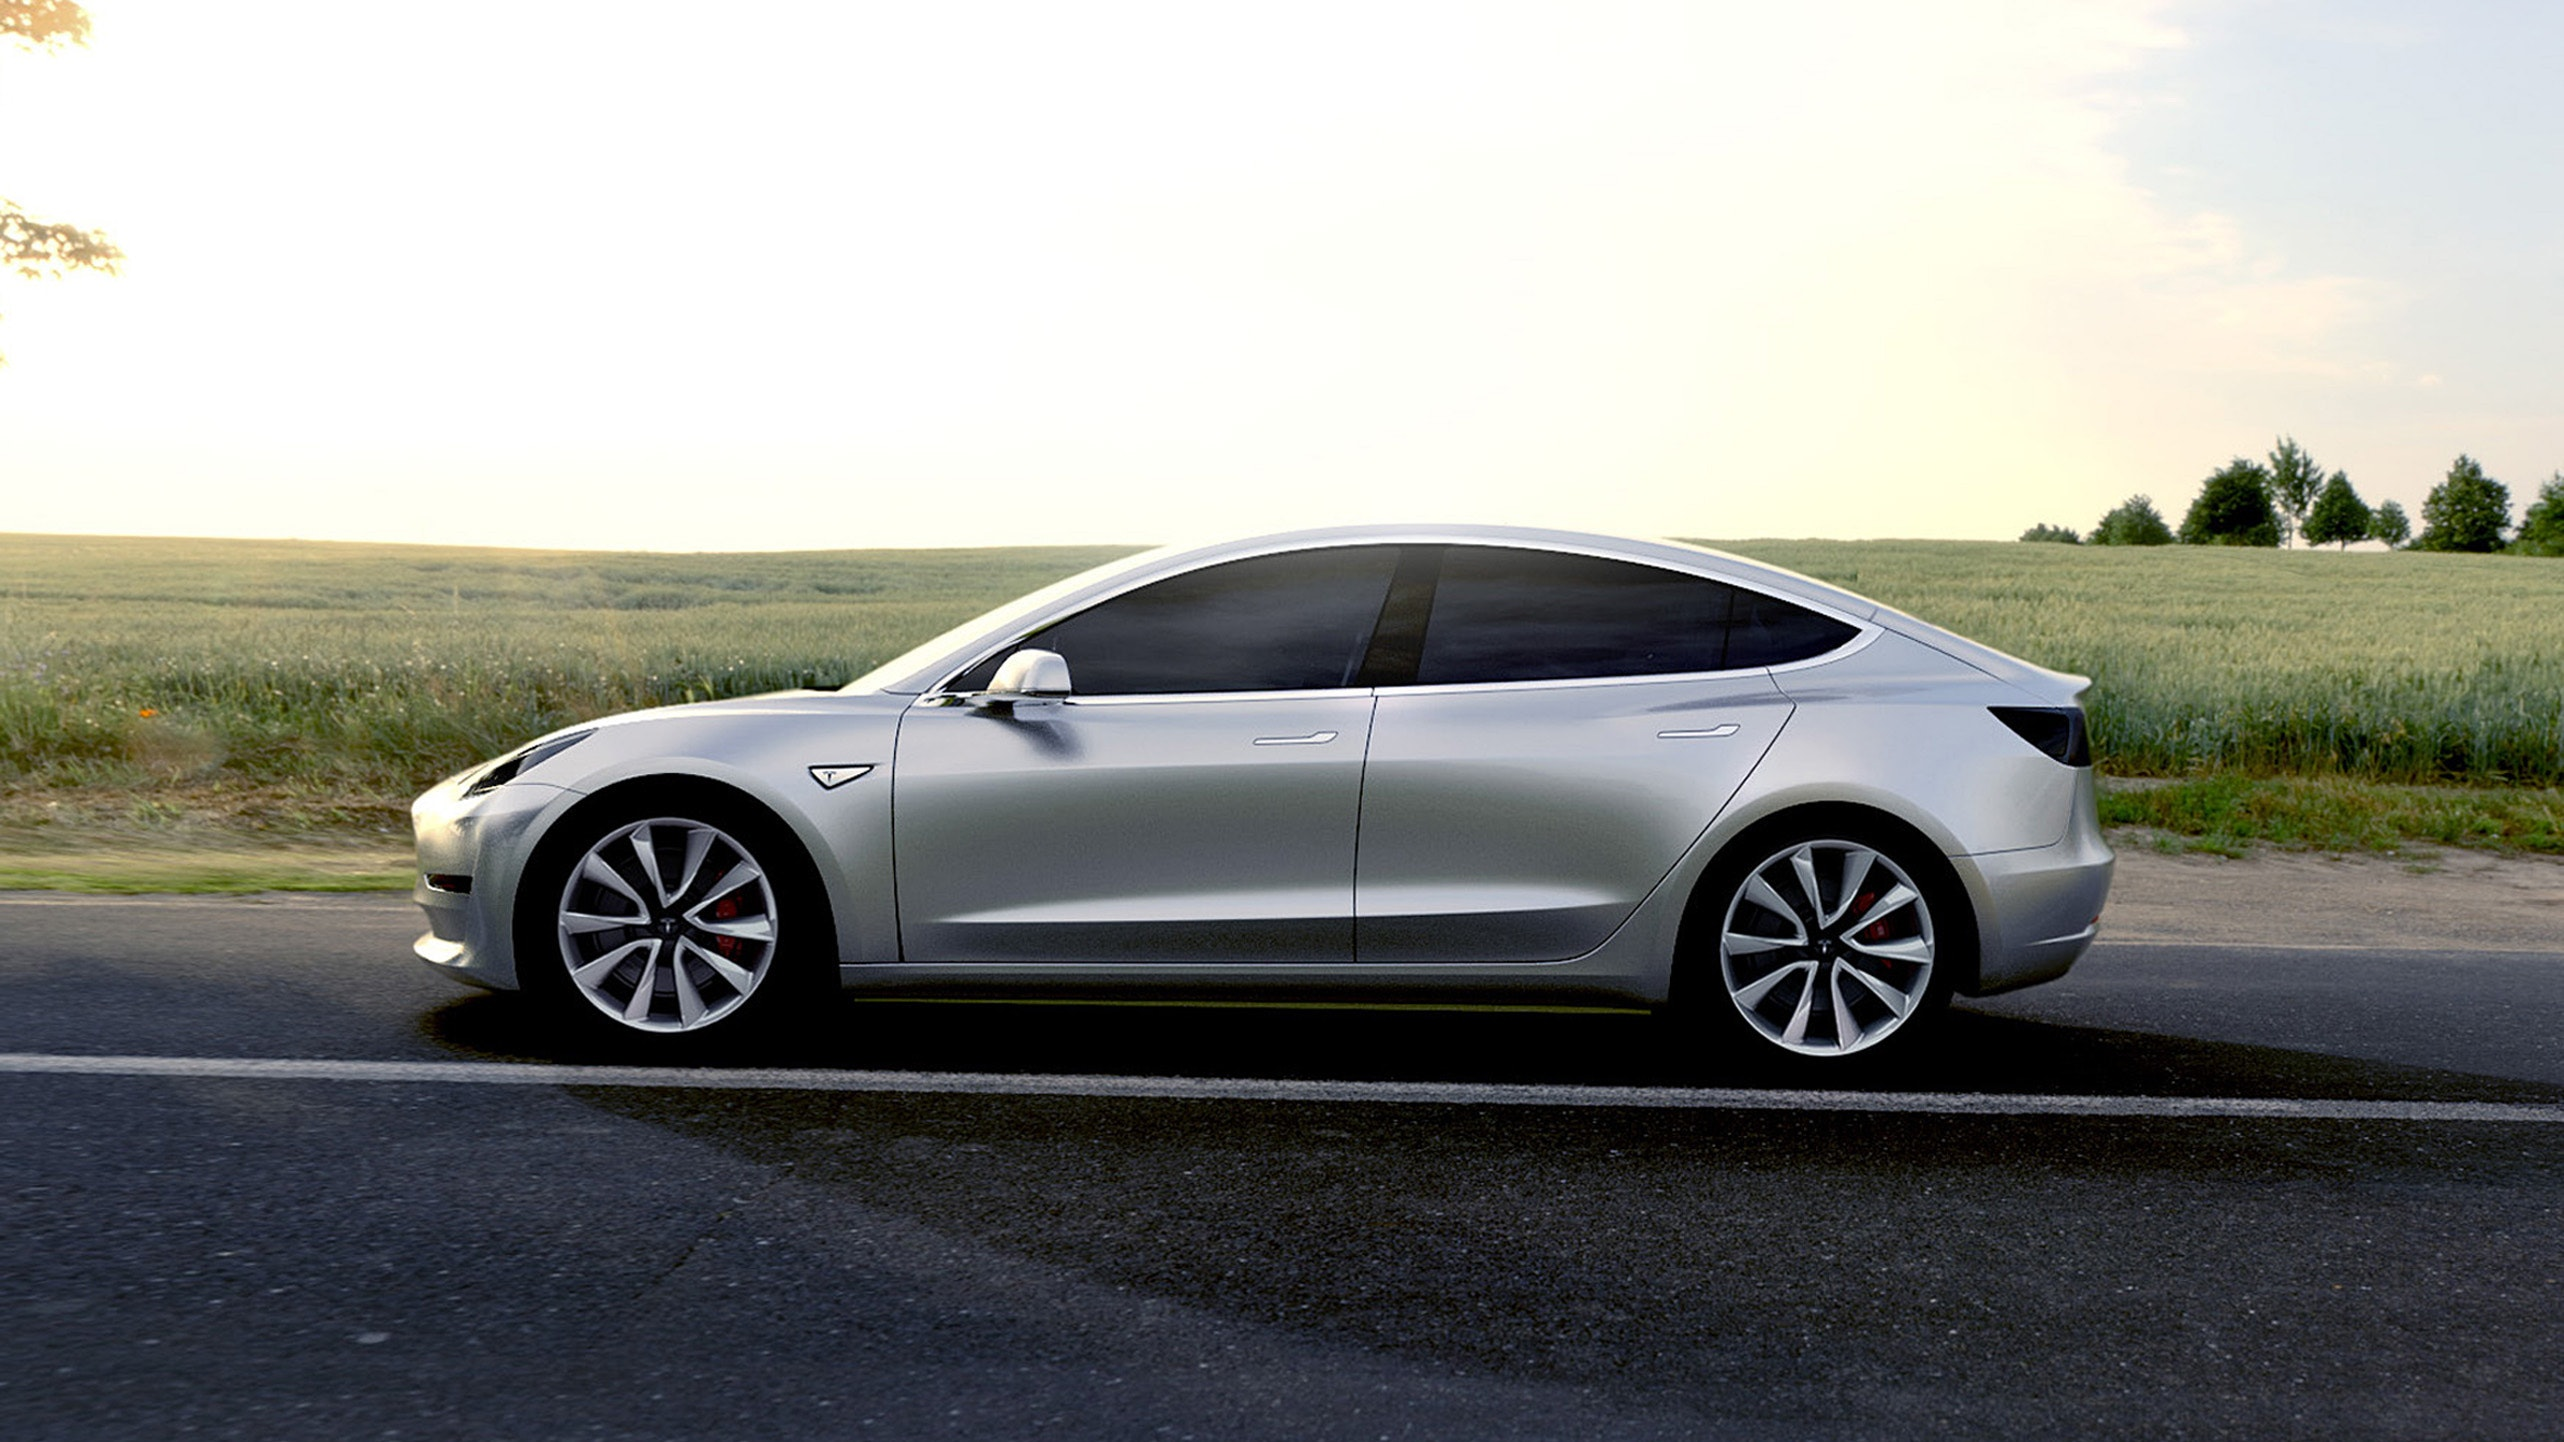 Musk announced the release of an all-wheel drive Tesla